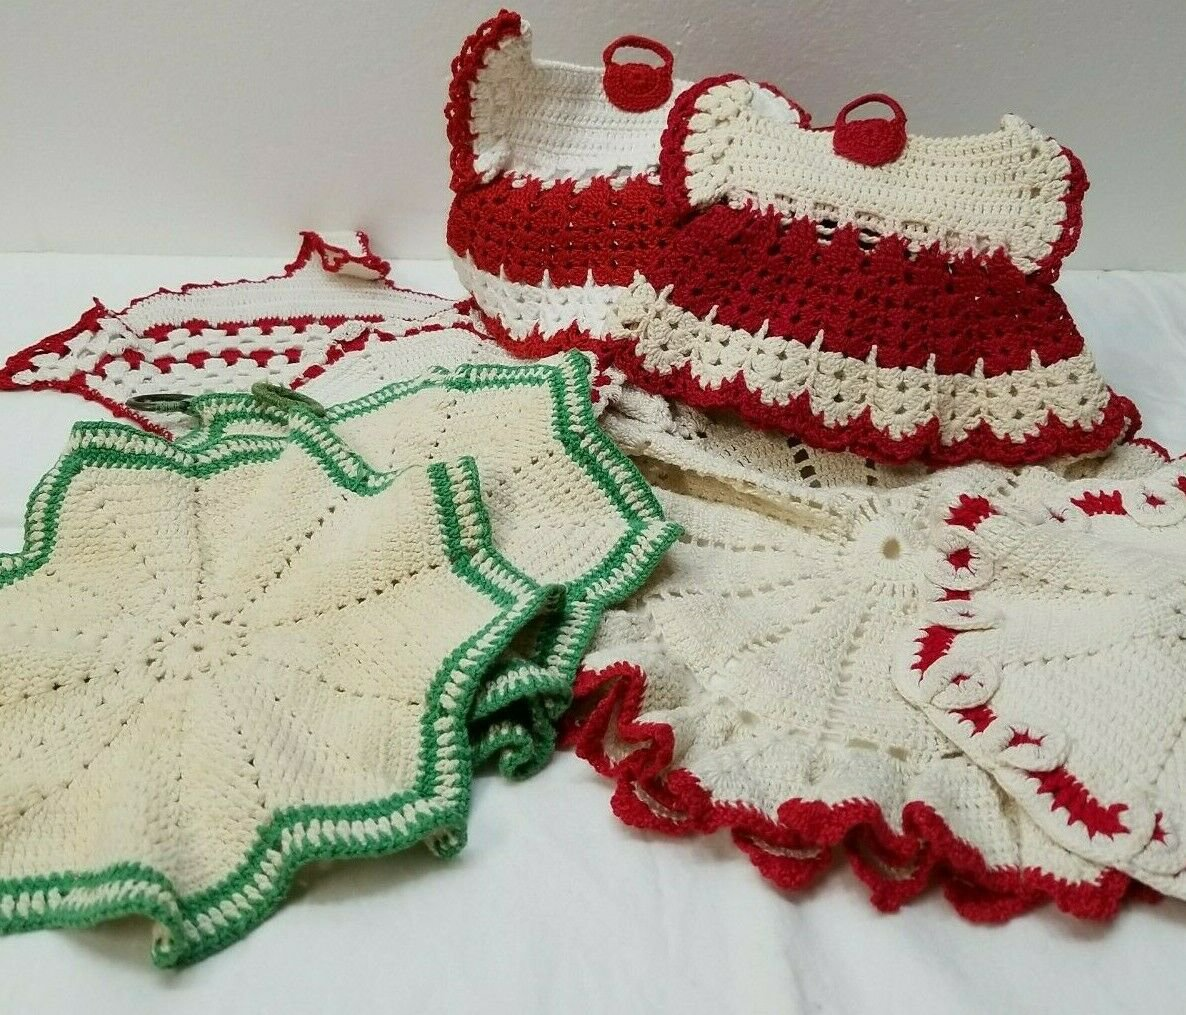 Vintage Doily Kitchen Cream with Red & Green Accents - 8 pieces